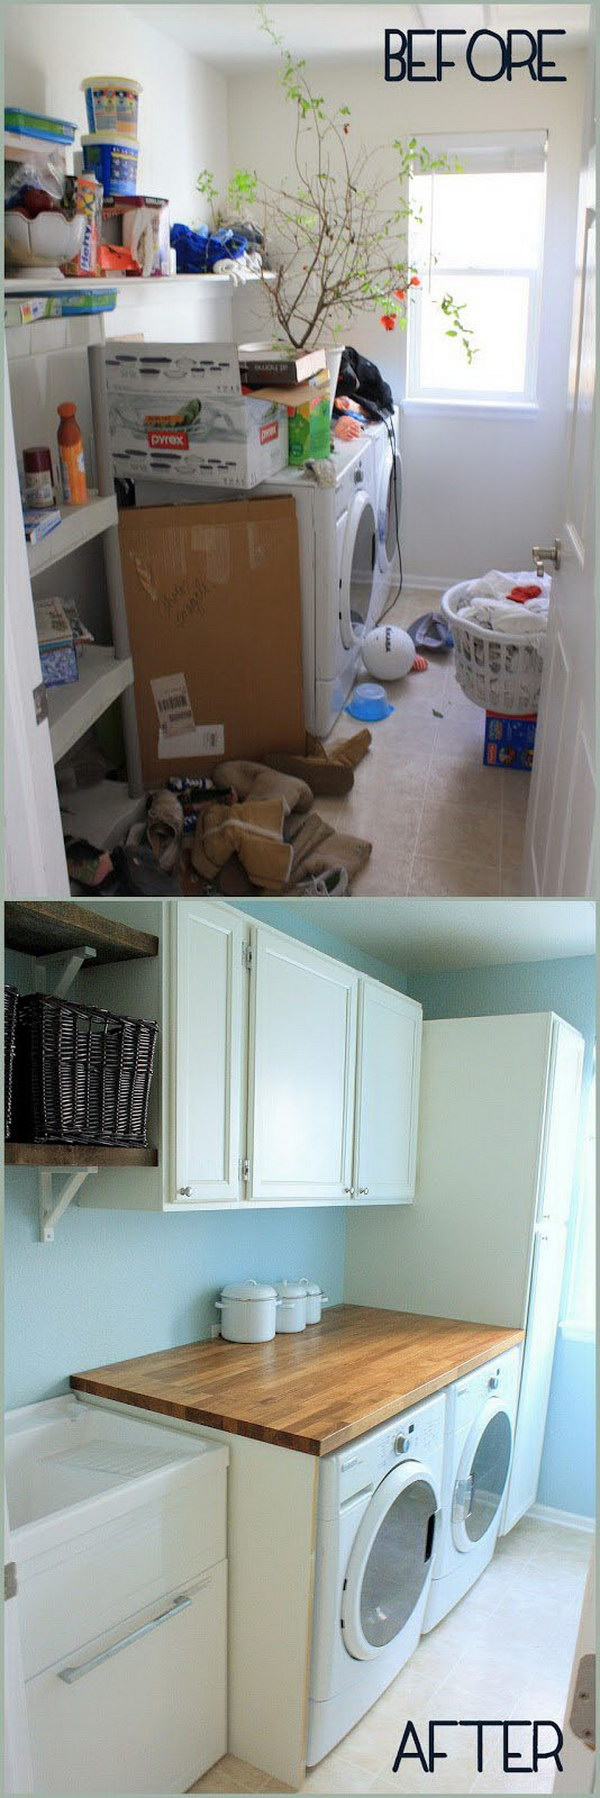 Form Mess To Neat Laundry Room Makeover.